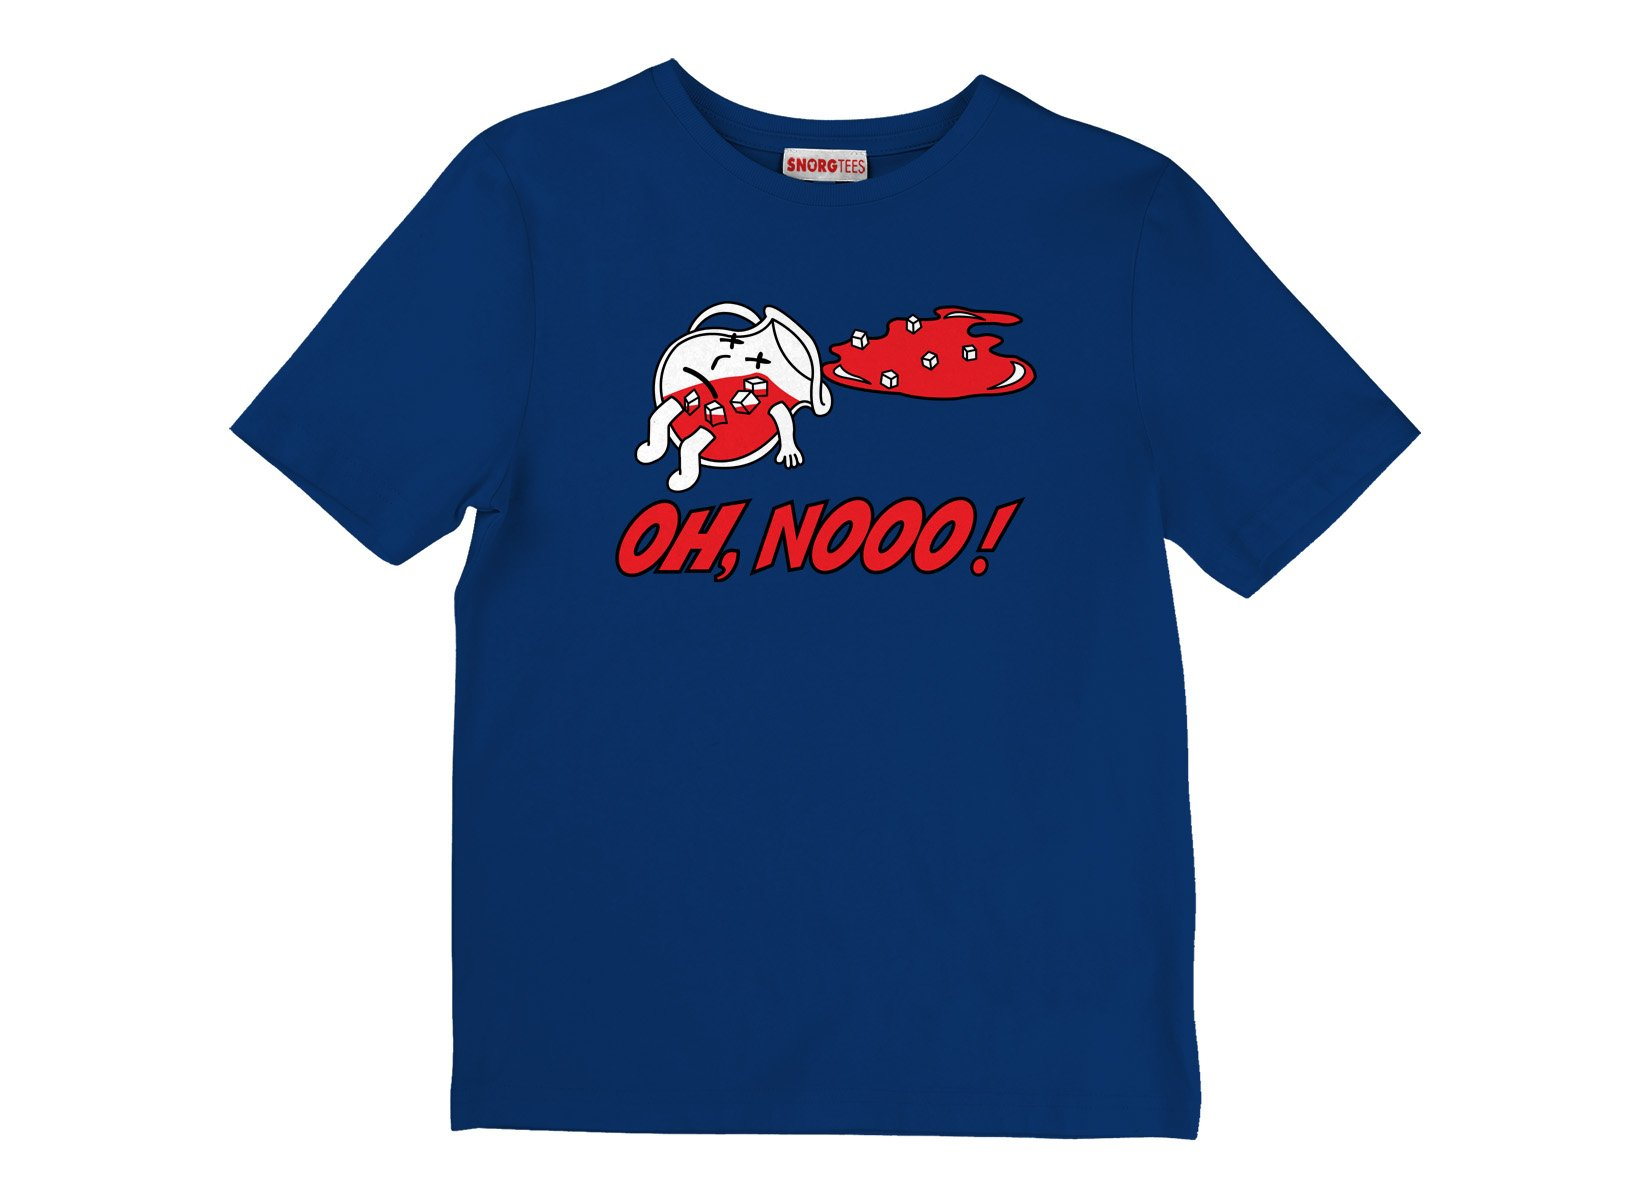 Cool Aid Man on Kids T-Shirt